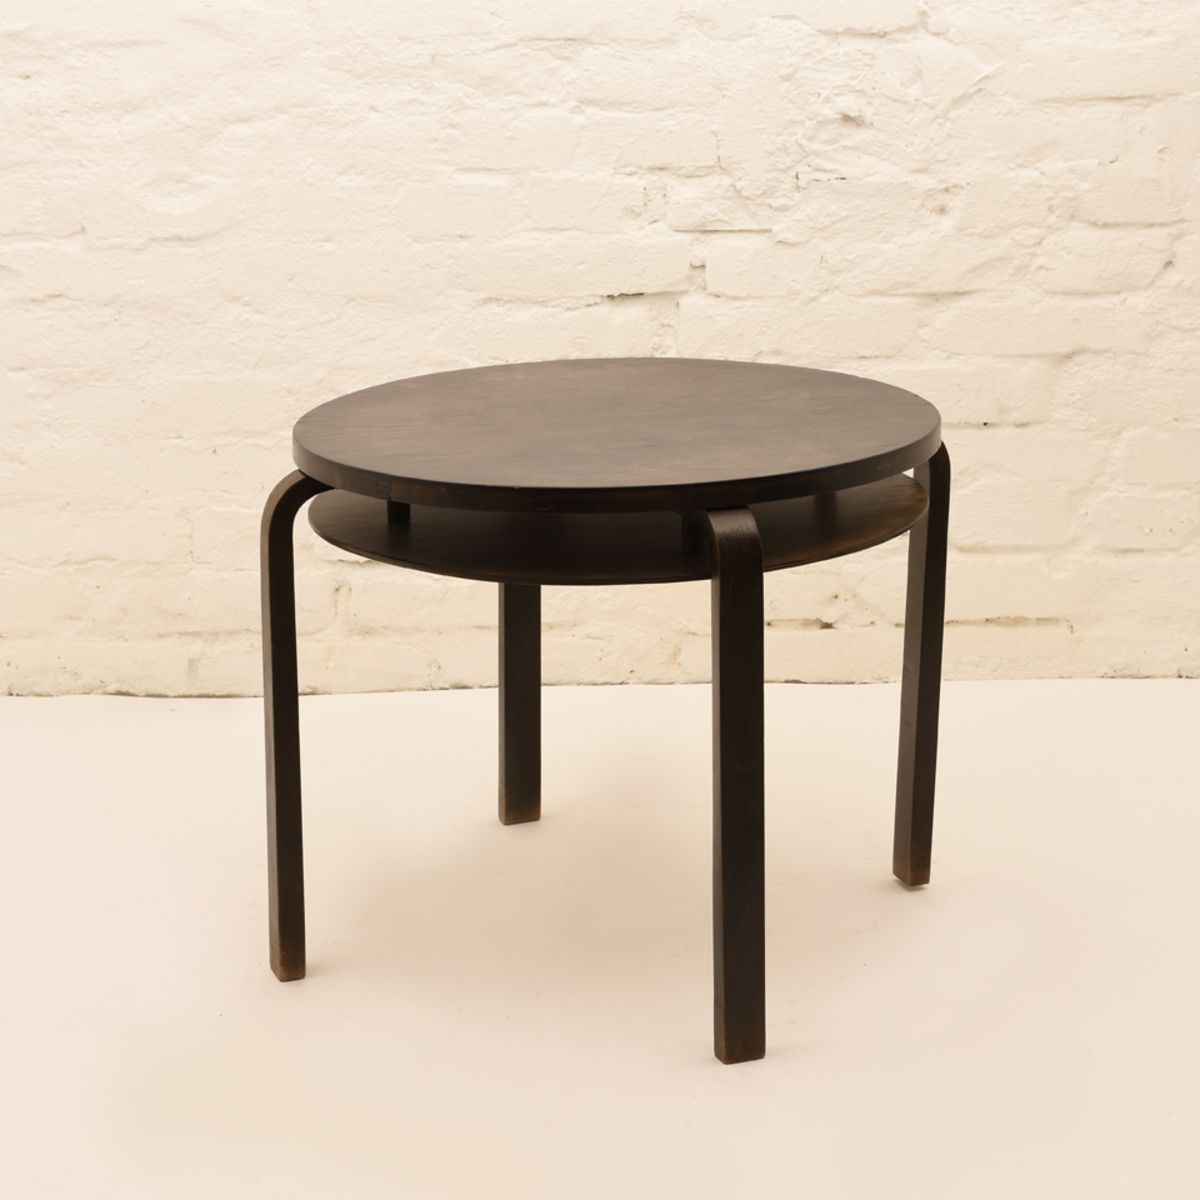 Alvar-Aalto_Club-Table-907B_Stained-Black-Birch